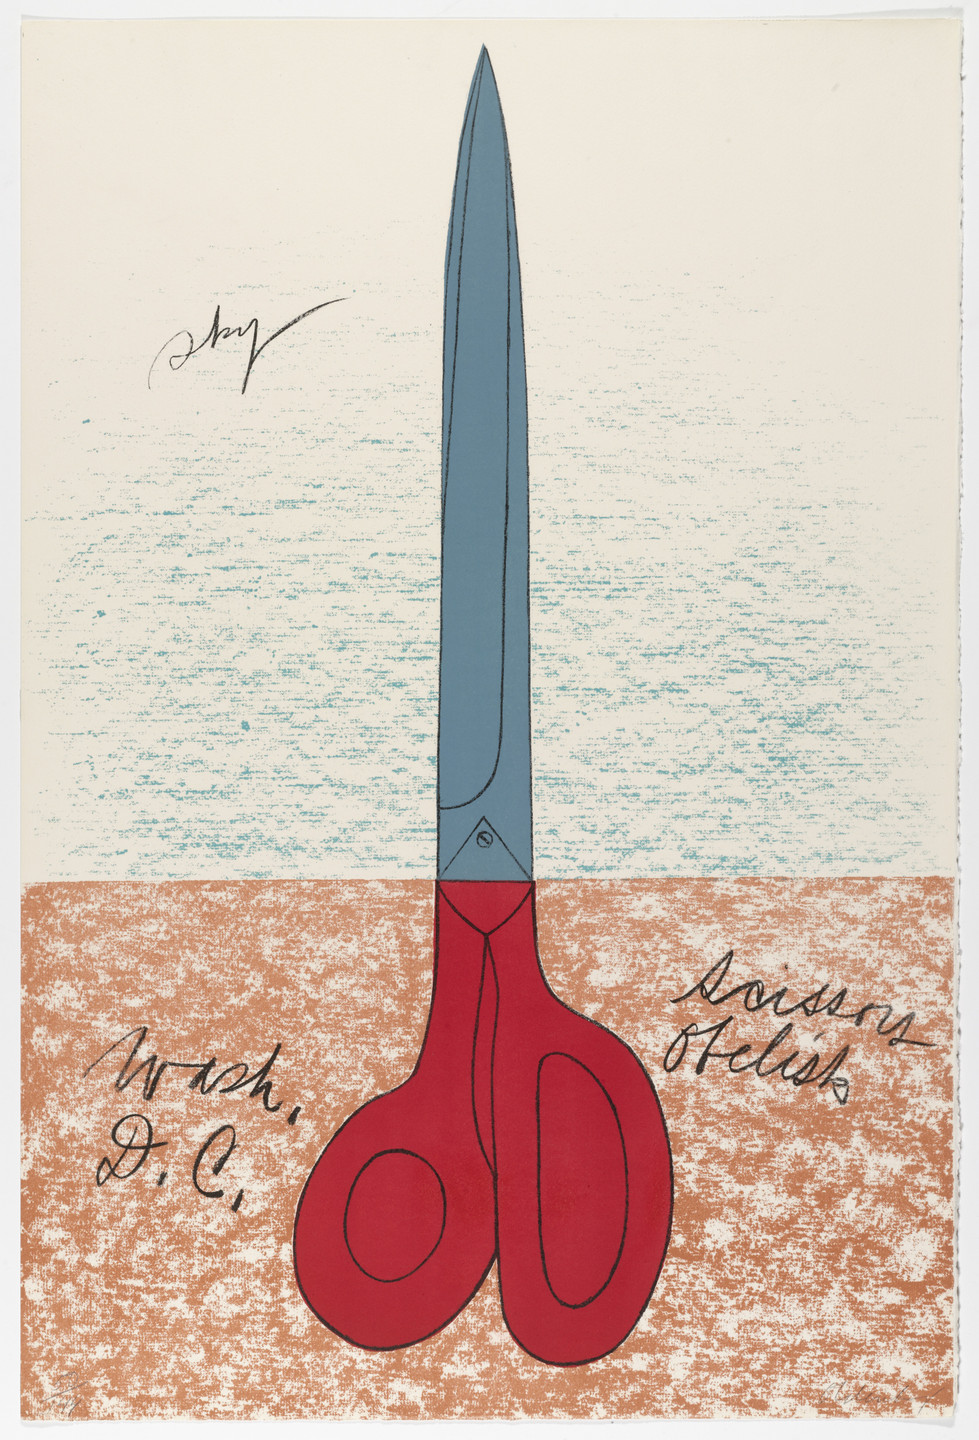 Claes Oldenburg. Scissors as Monument from National Collection of Fine Arts Portfolio. 1967, published 1968